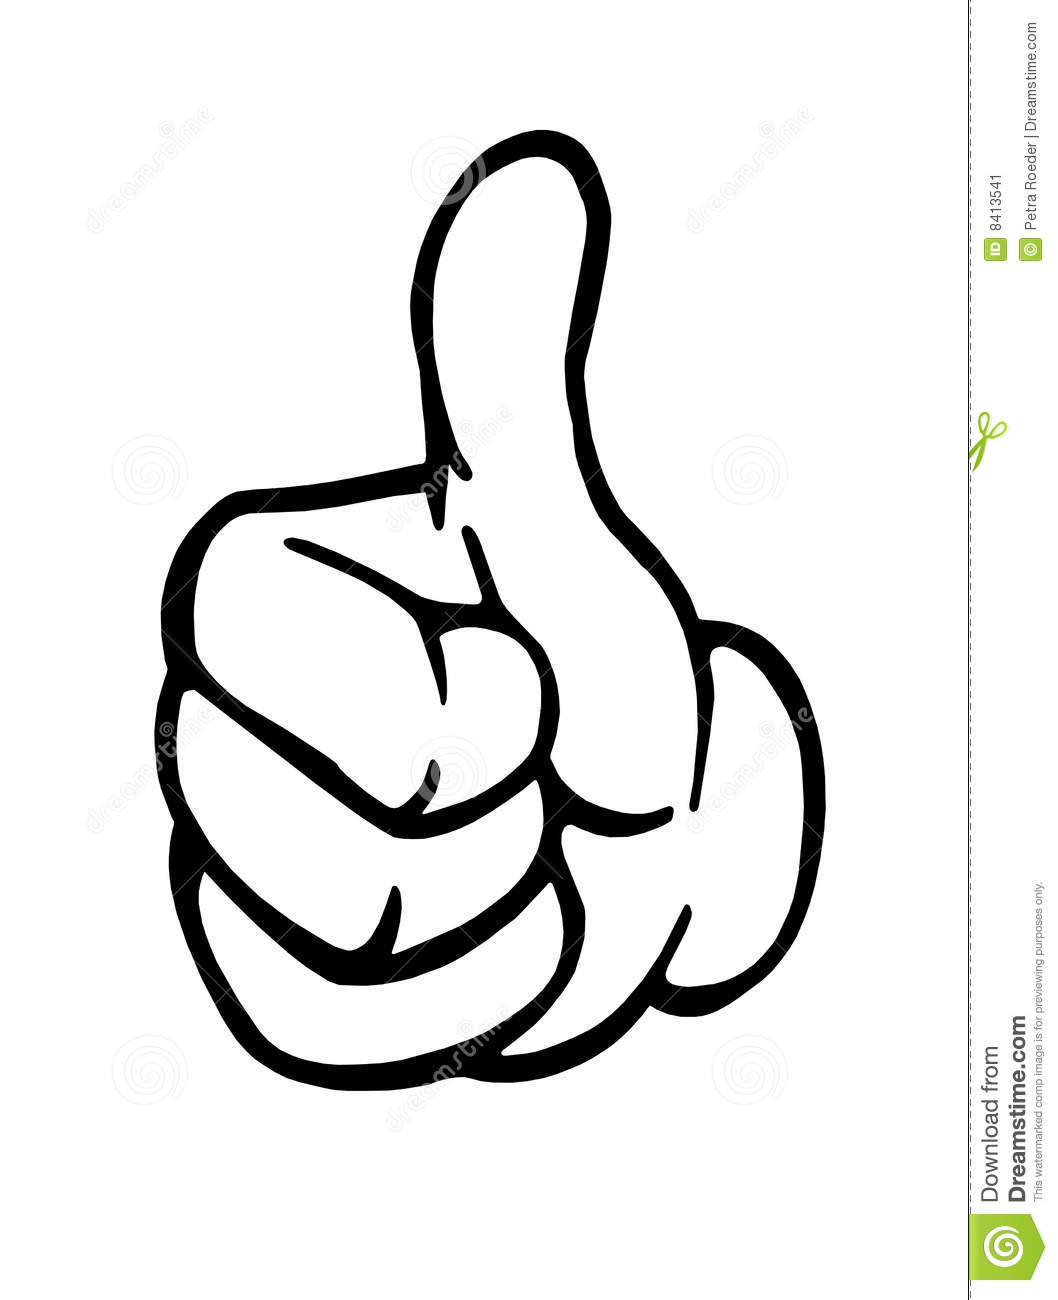 2 thumbs up clipart graphic transparent Thumbs clipart - ClipartFest graphic transparent